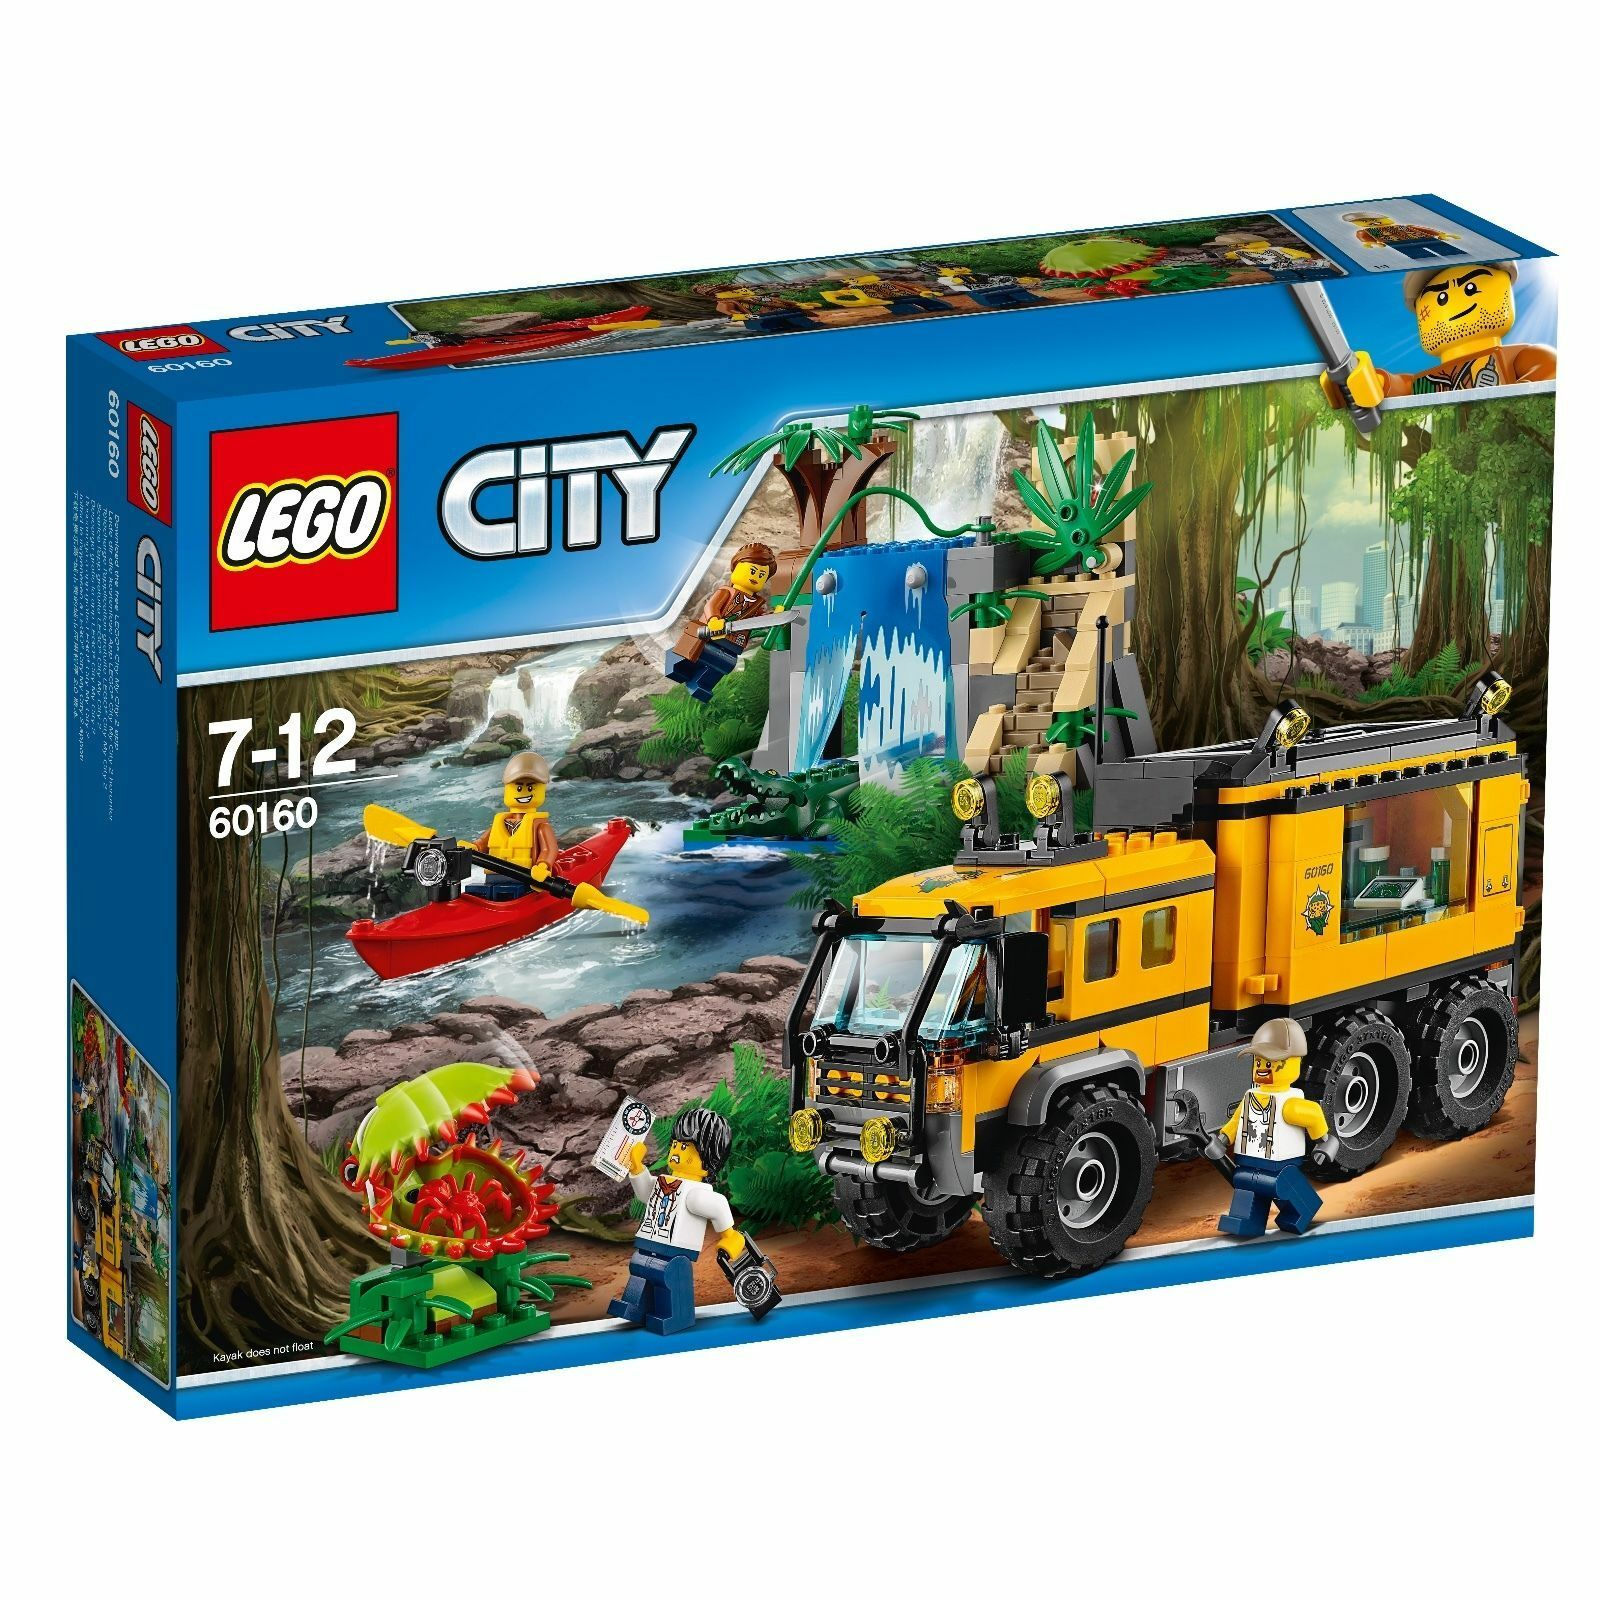 LEGO® City 60160 Mobiles Dschungel-Labor  NEU OVP_ Jungle Mobile Lab NEW MISB